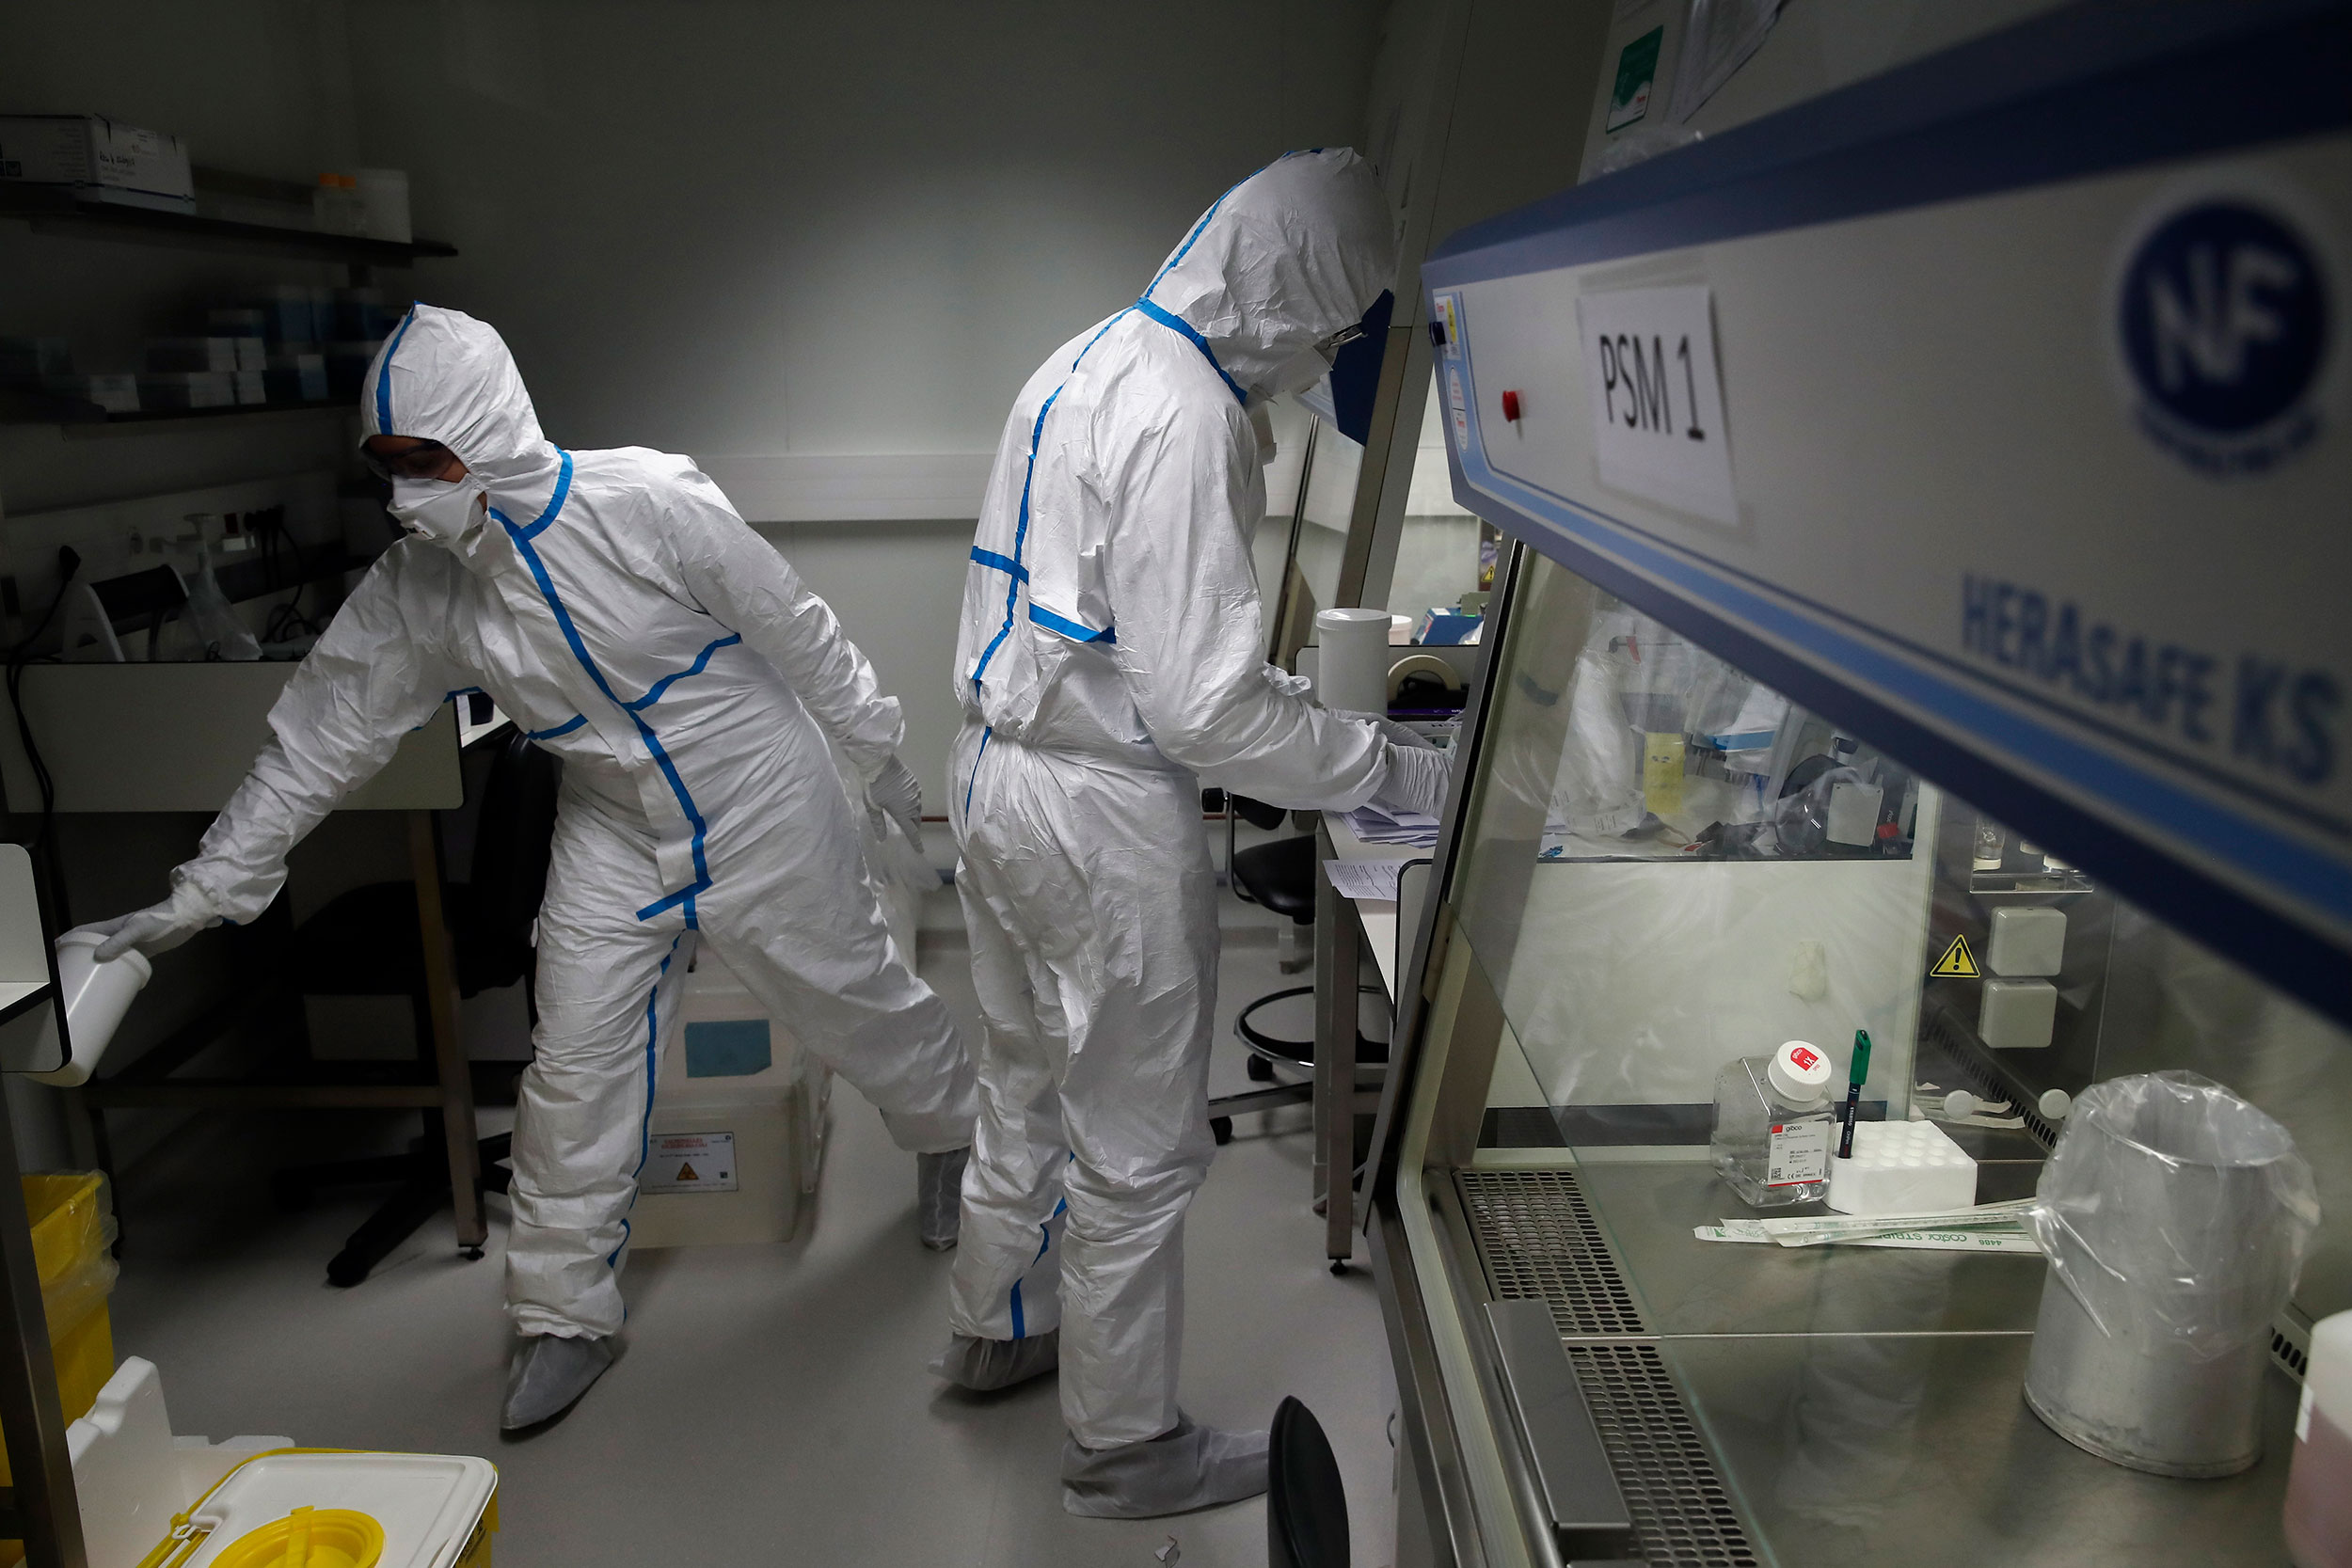 Scientists at the Pasteur Institute in Paris test samples from infected patients.